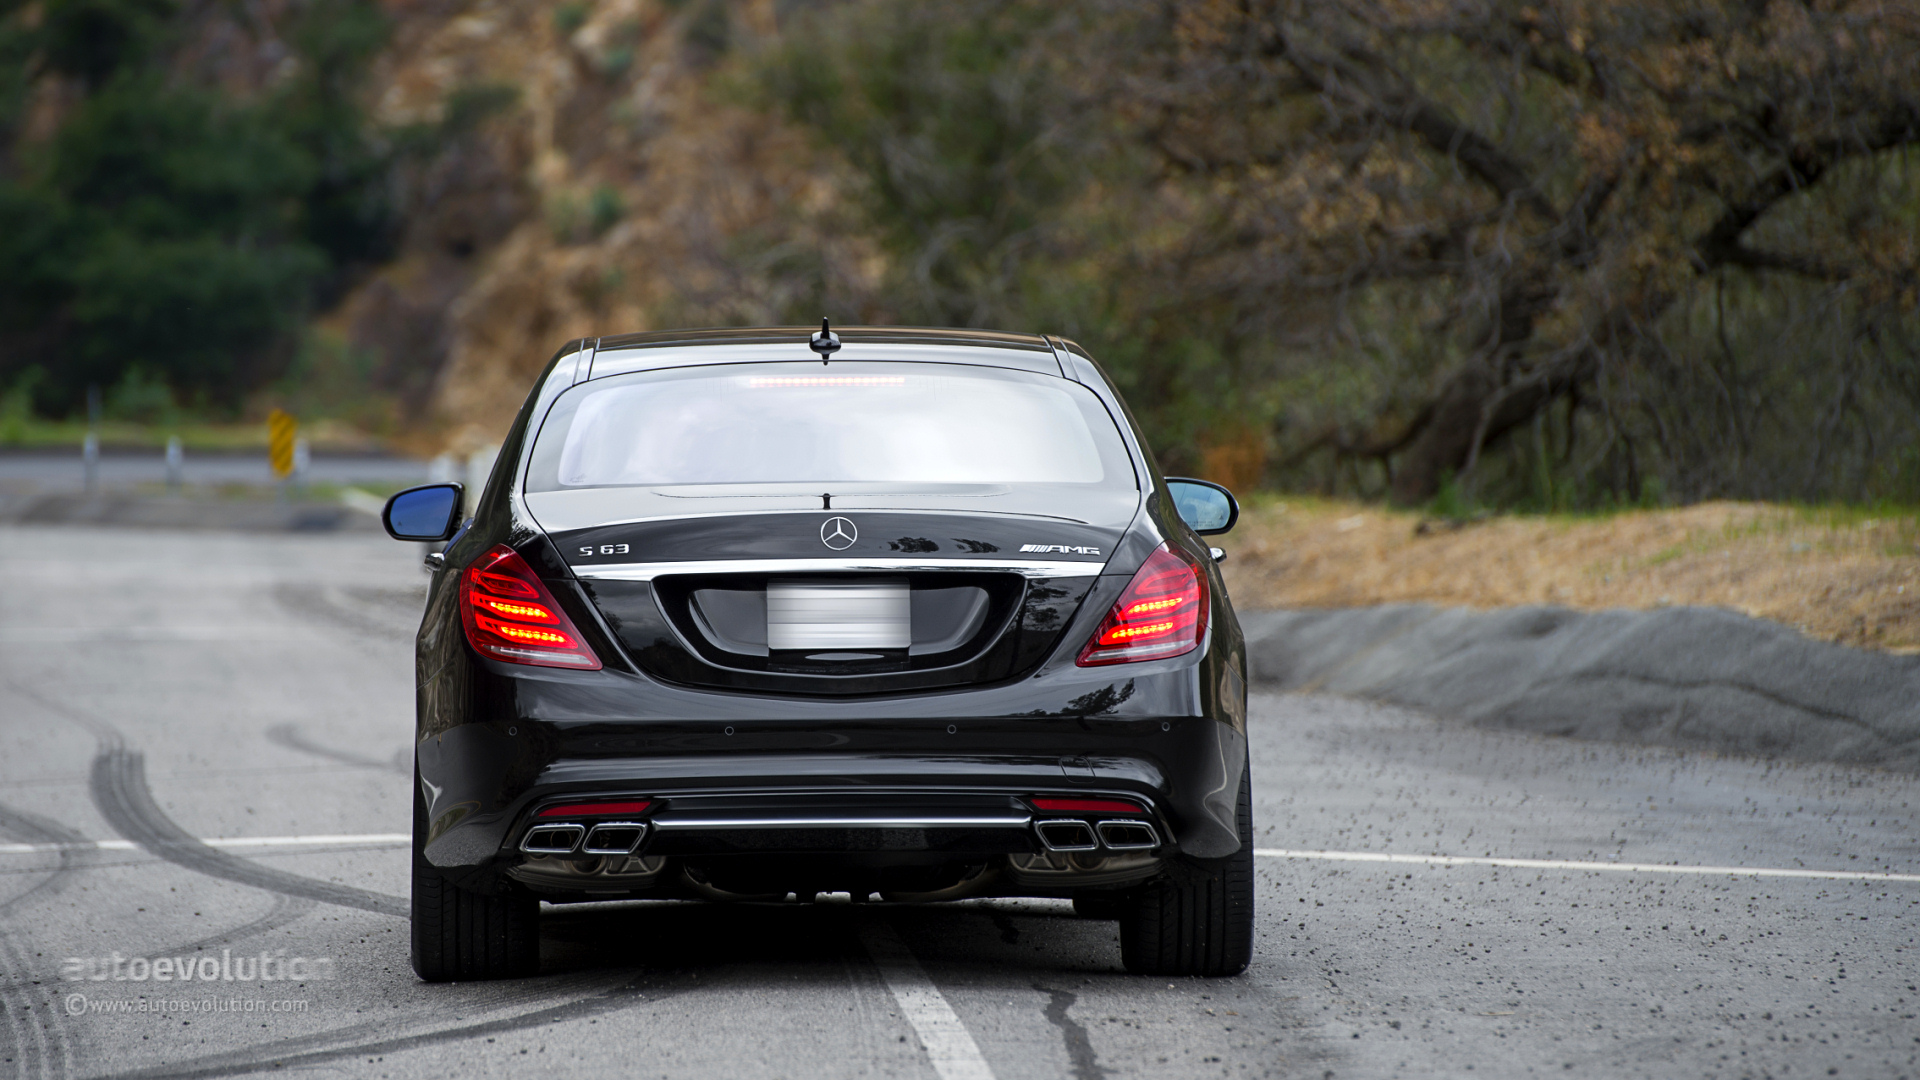 Mercedes Benz S 63 Amg 4matic Tested By Autoevolution